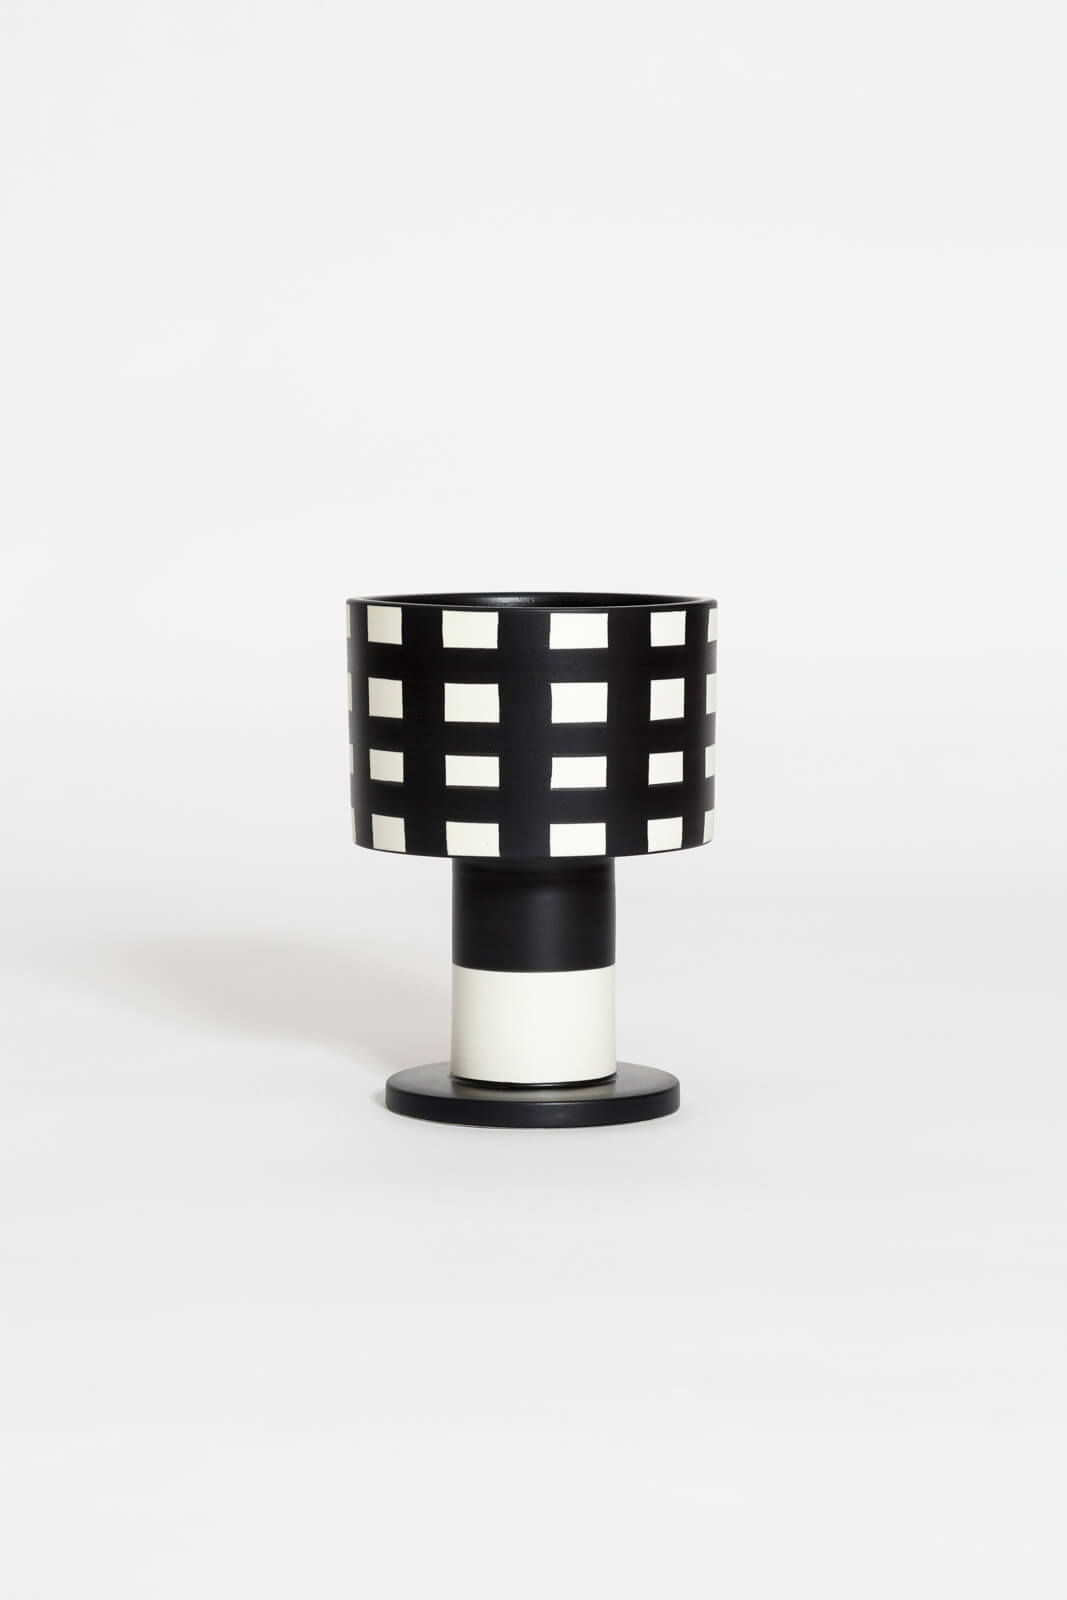 Vase by Ettore Sottsass for sale